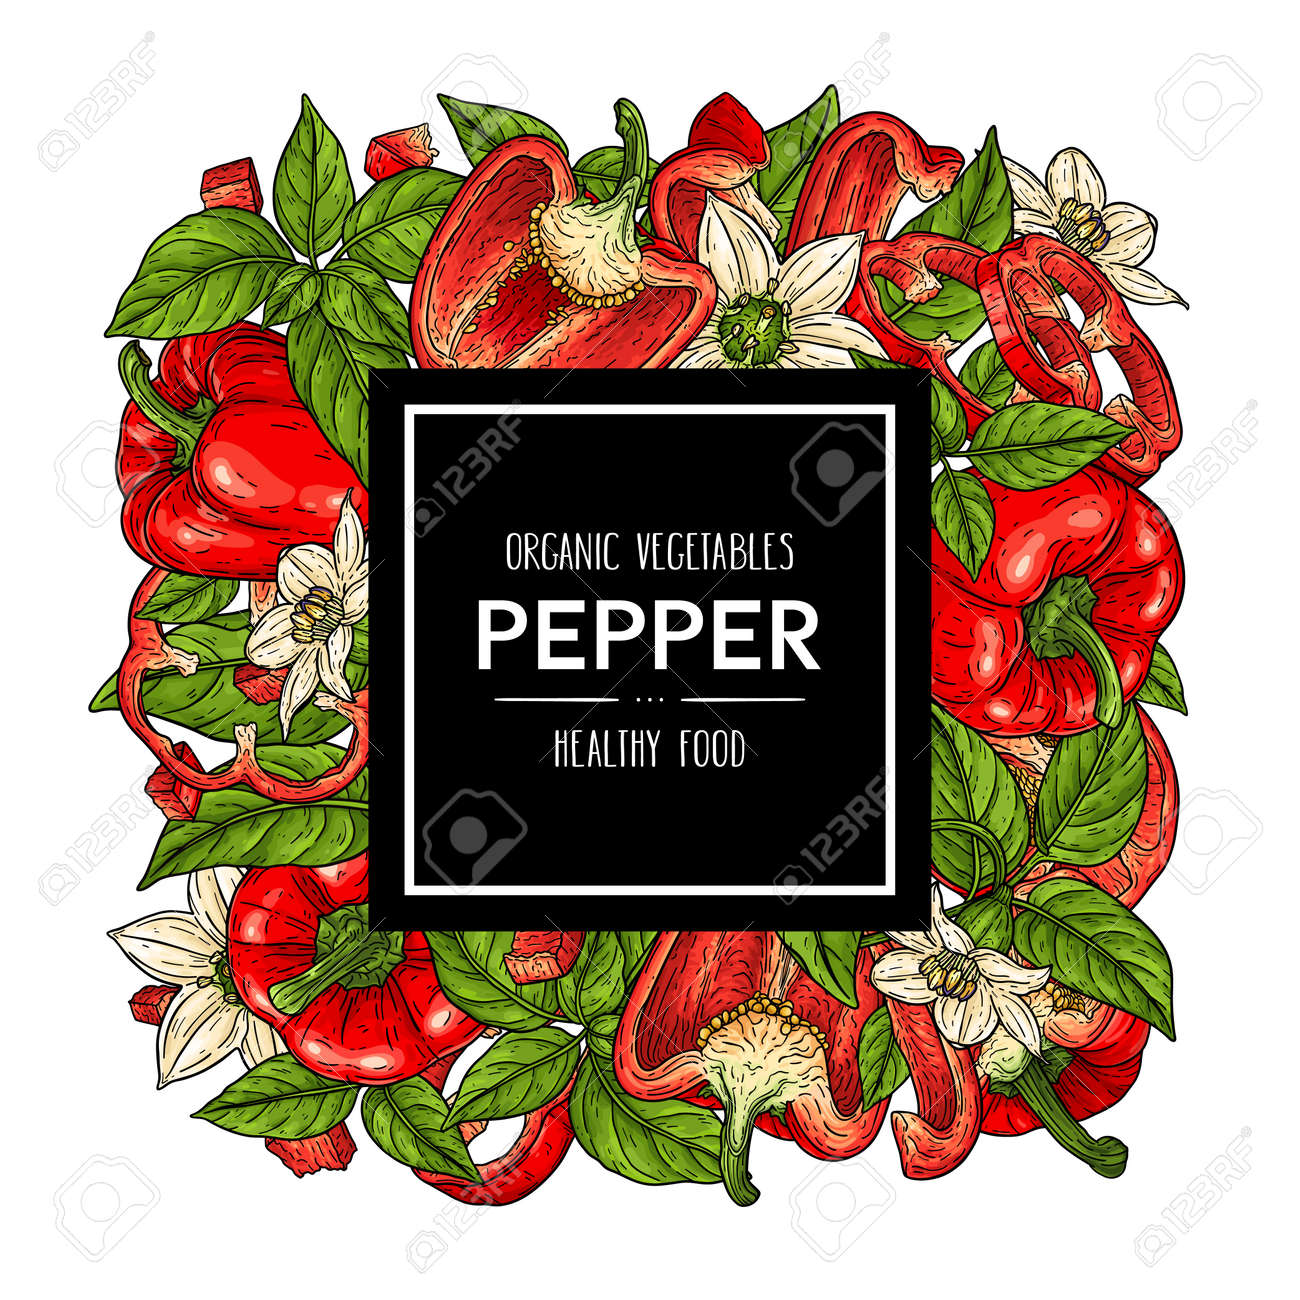 Vector hand drawn background with natural bell peppers, slices, halves, pieces, flower, branch and leaves. Healthy vegetables illustration - 168597422